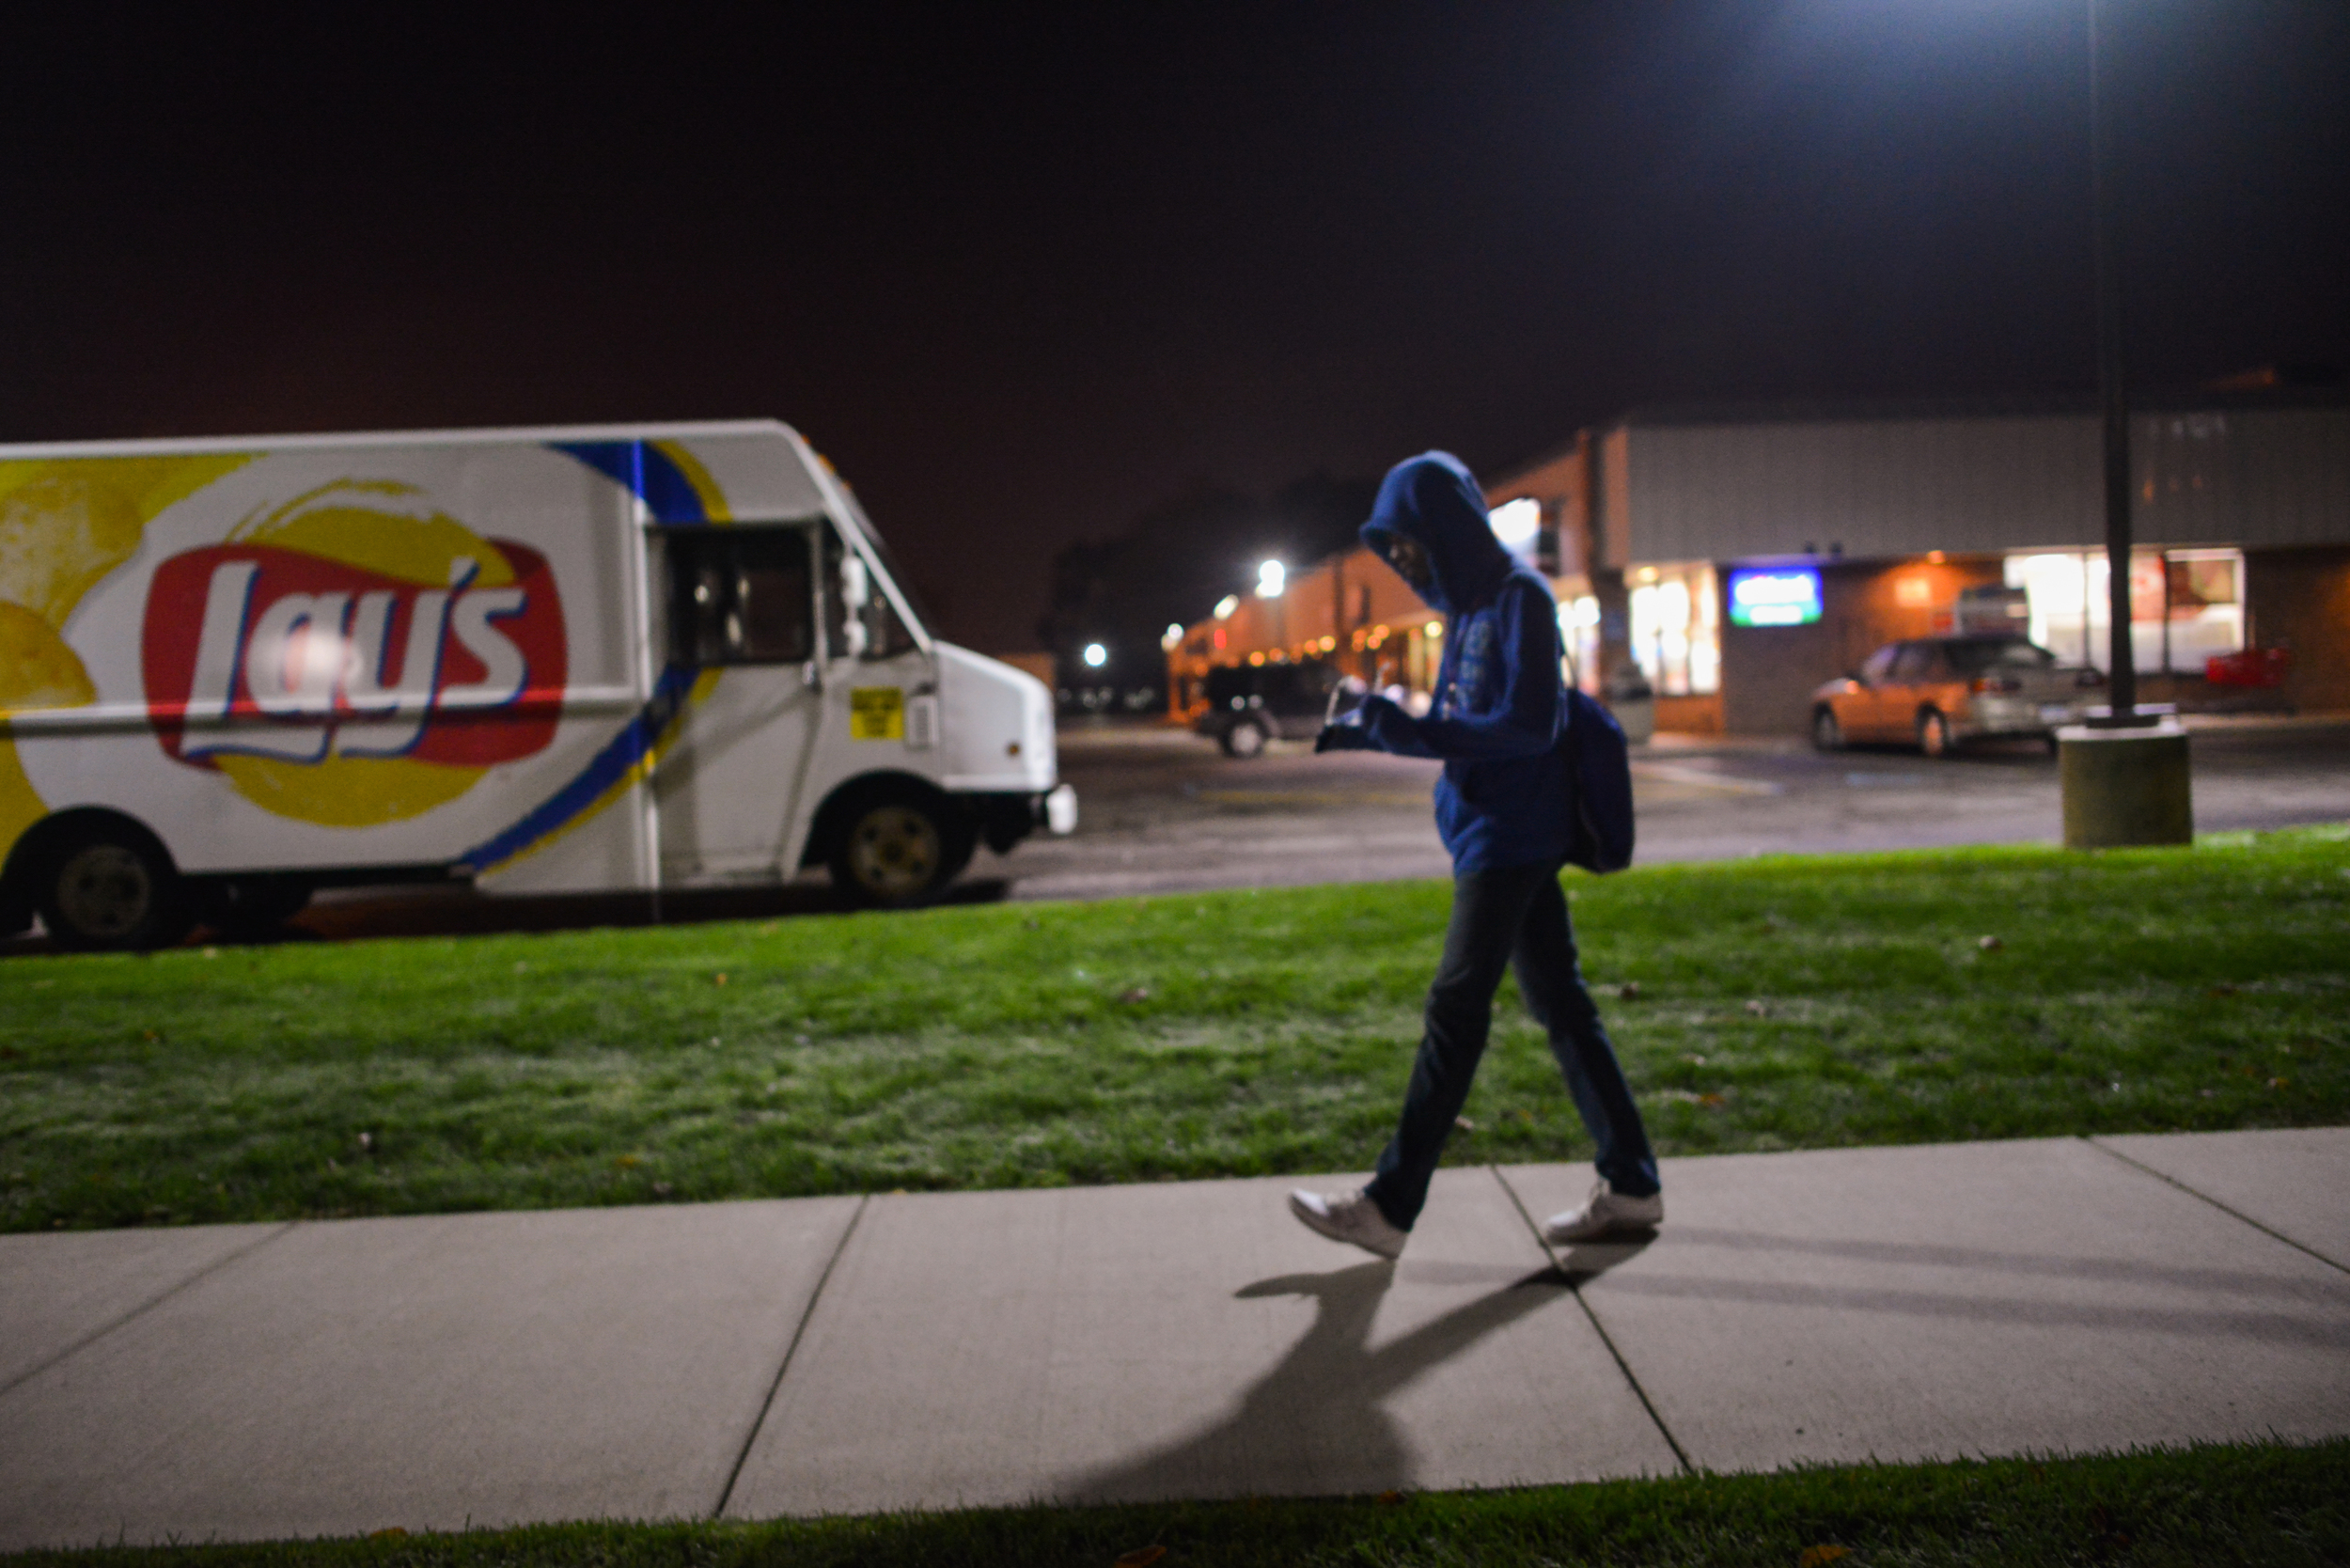 Up at 6:00 A.M. everyday, Kenneth walks a mile to school in order to eat a free breakfast provided by the Community Eligibility Option, a meal plan implemented in East Detroit Public Schools by the National School Lunch Breakfast program.